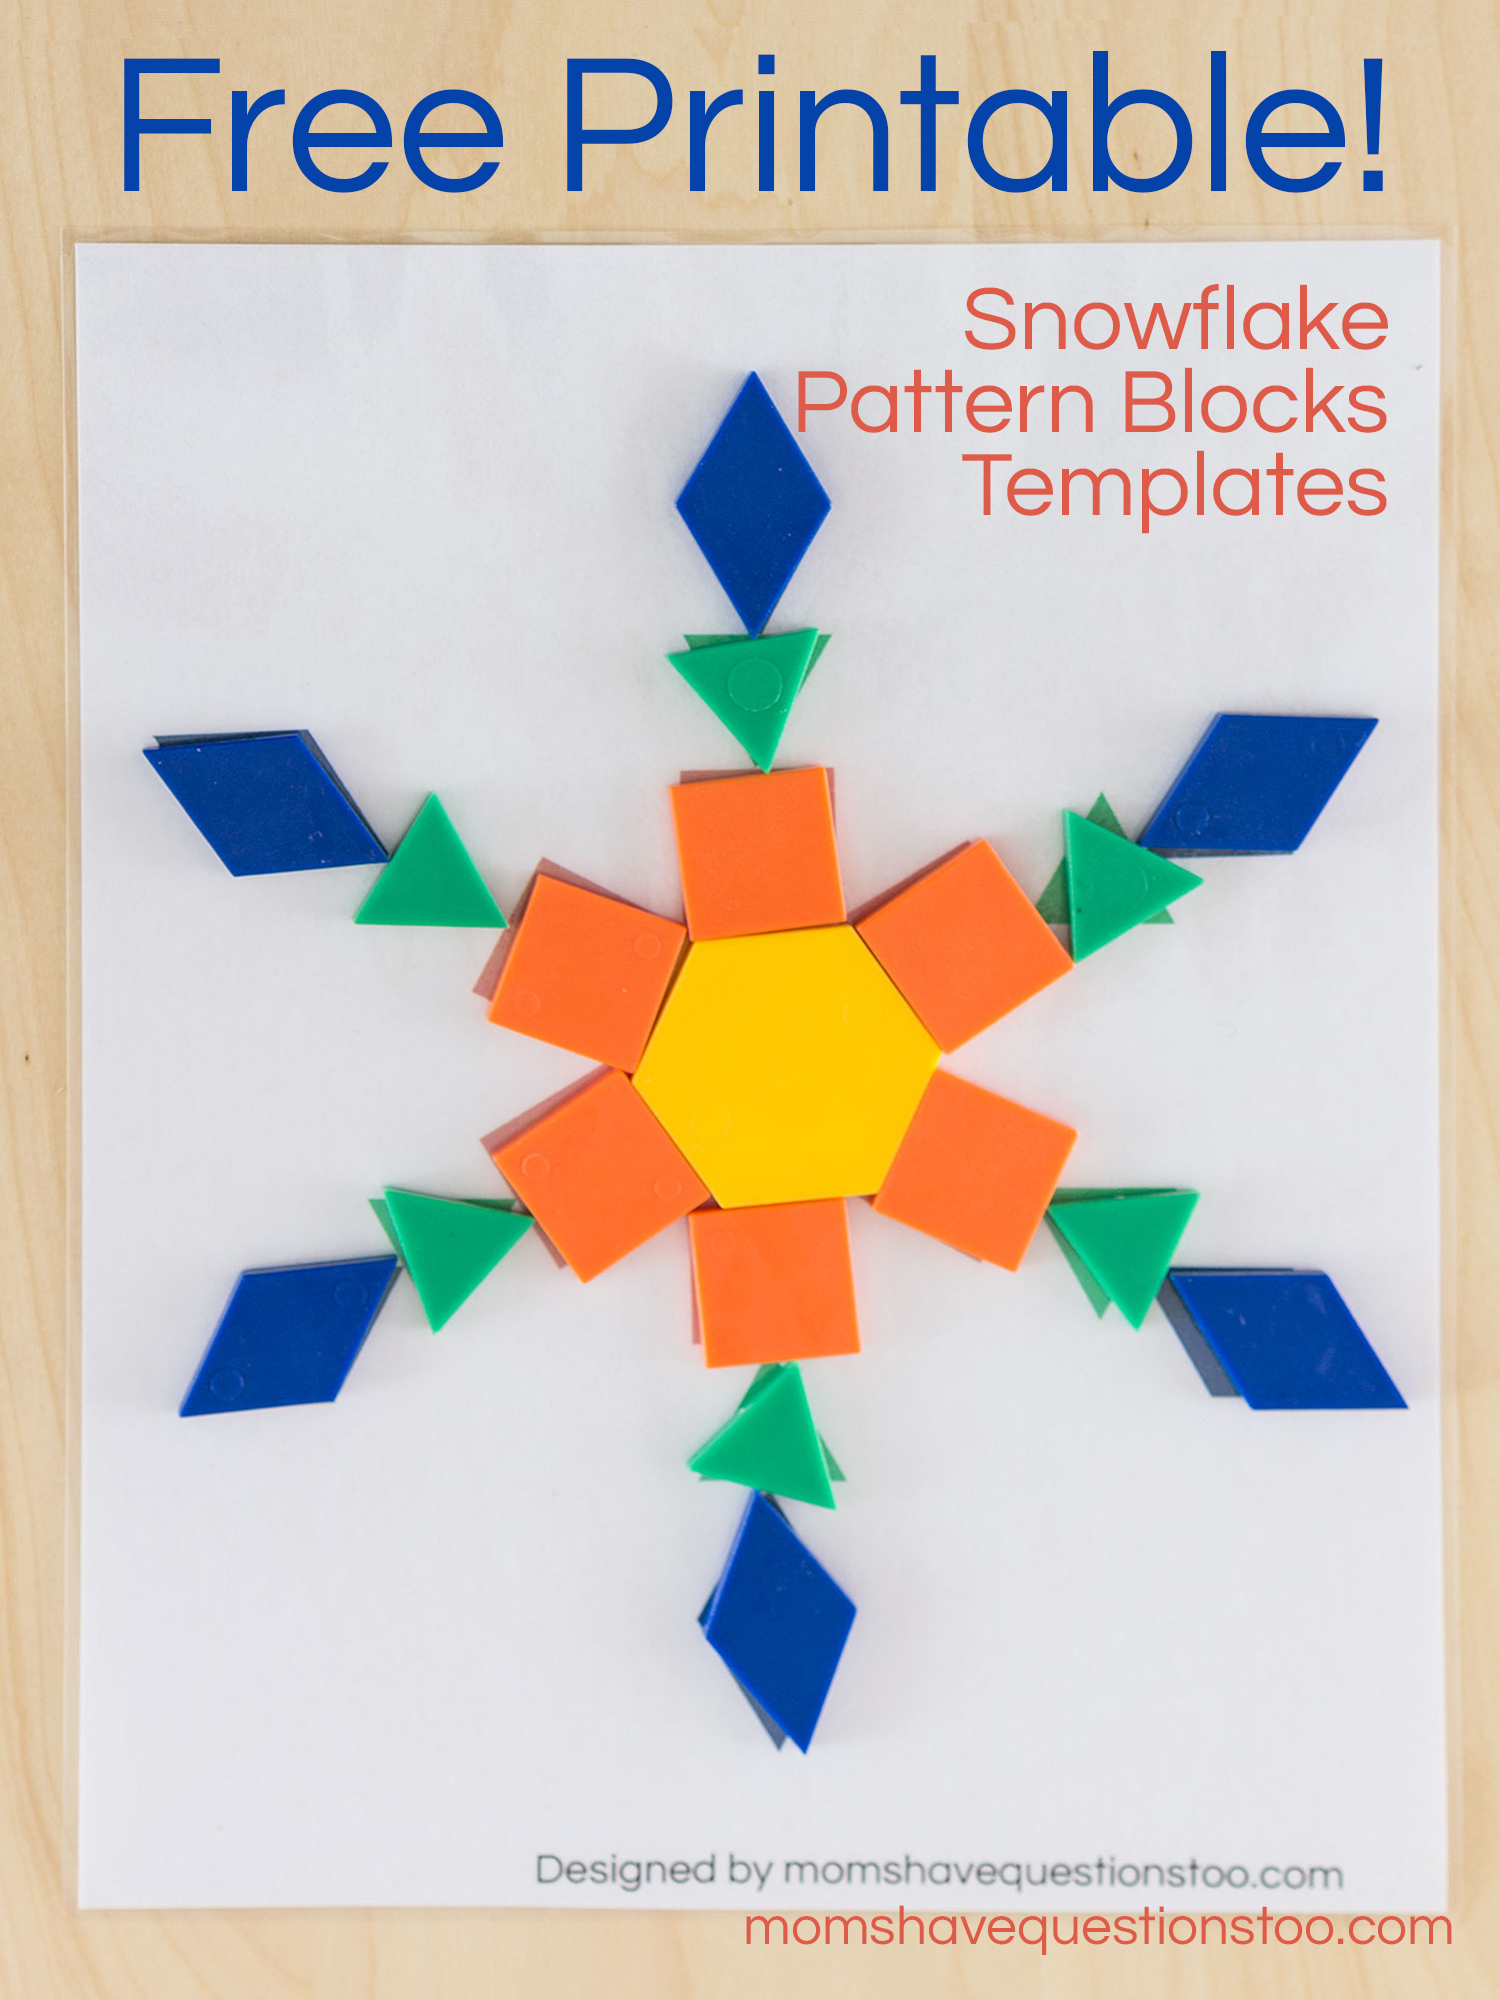 Pattern Block Template | Snowflake Pattern Blocks Templates Moms Have Questions Too